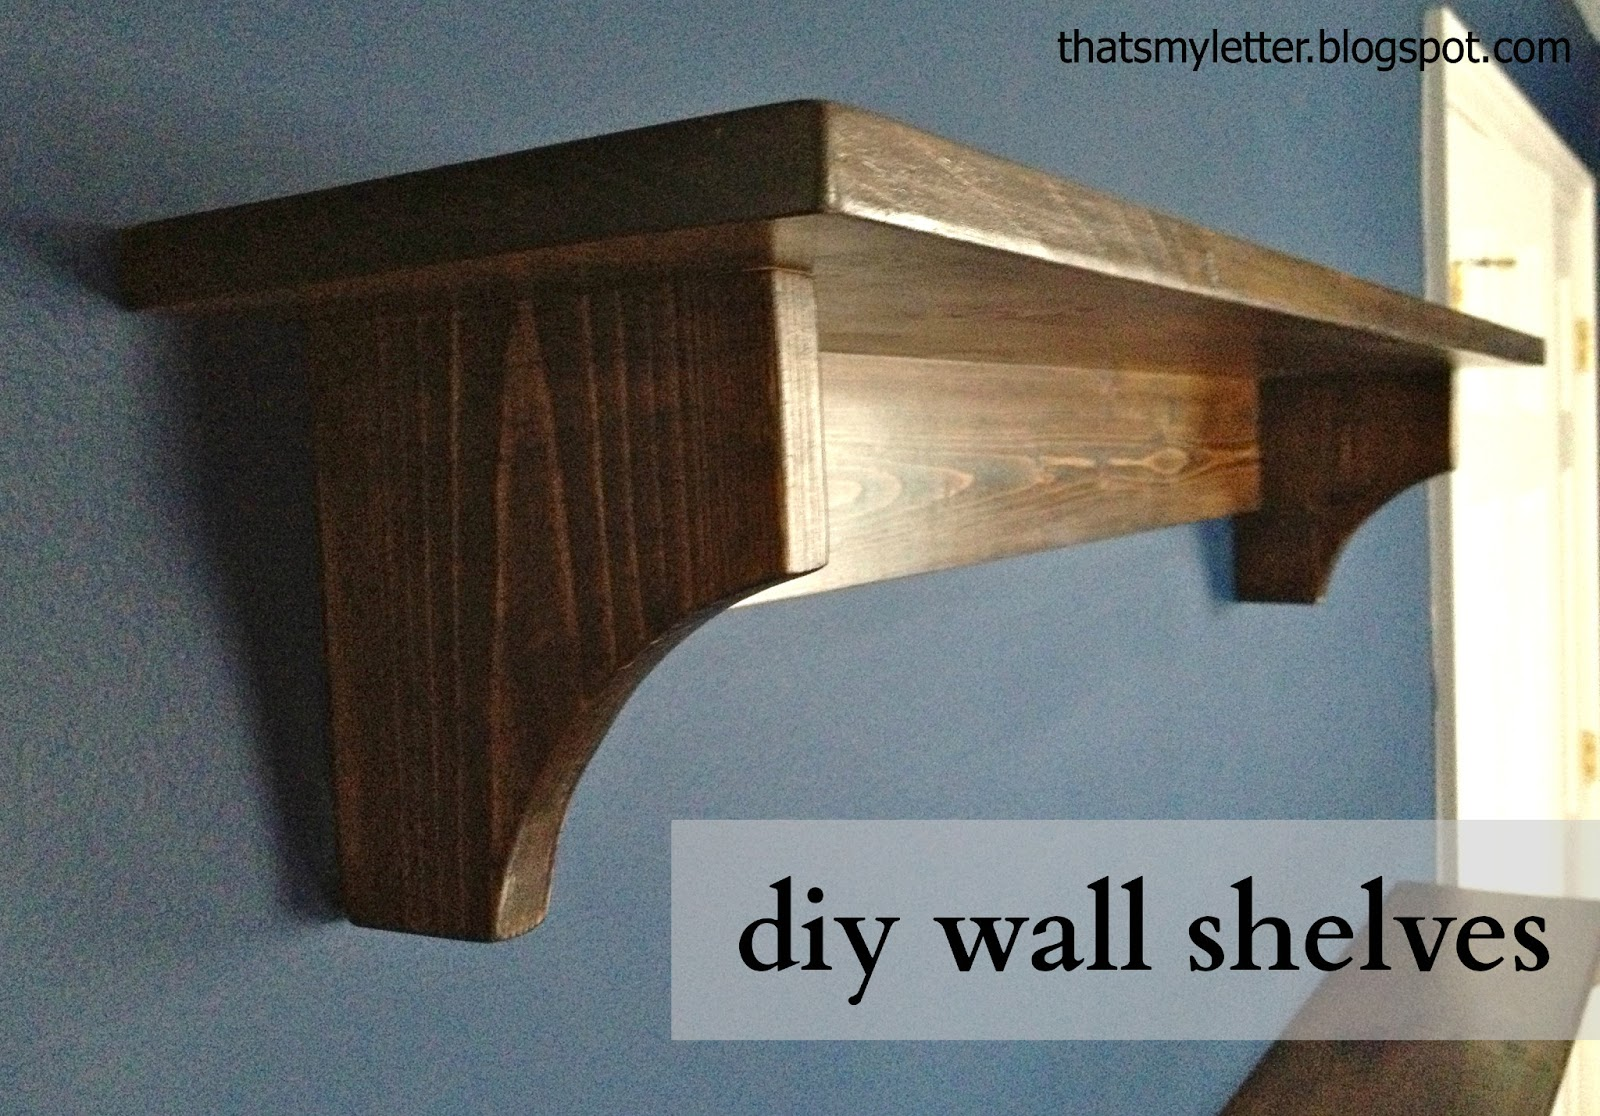 Simple wood shelves plans quick woodworking projects for How to make wall shelves easy